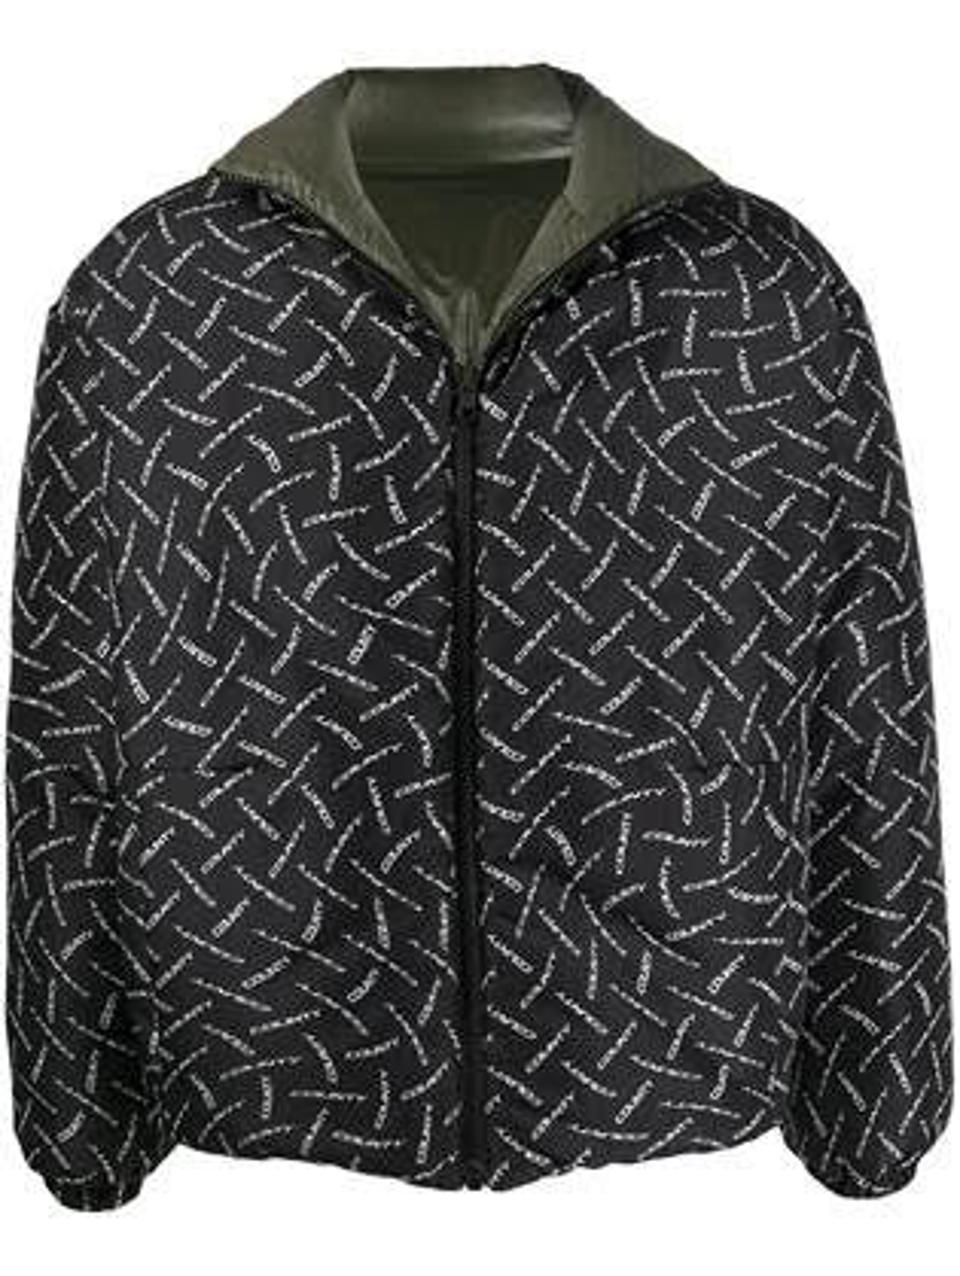 Marcelo Burlon, County of Milan Reversible Puffer Jacket